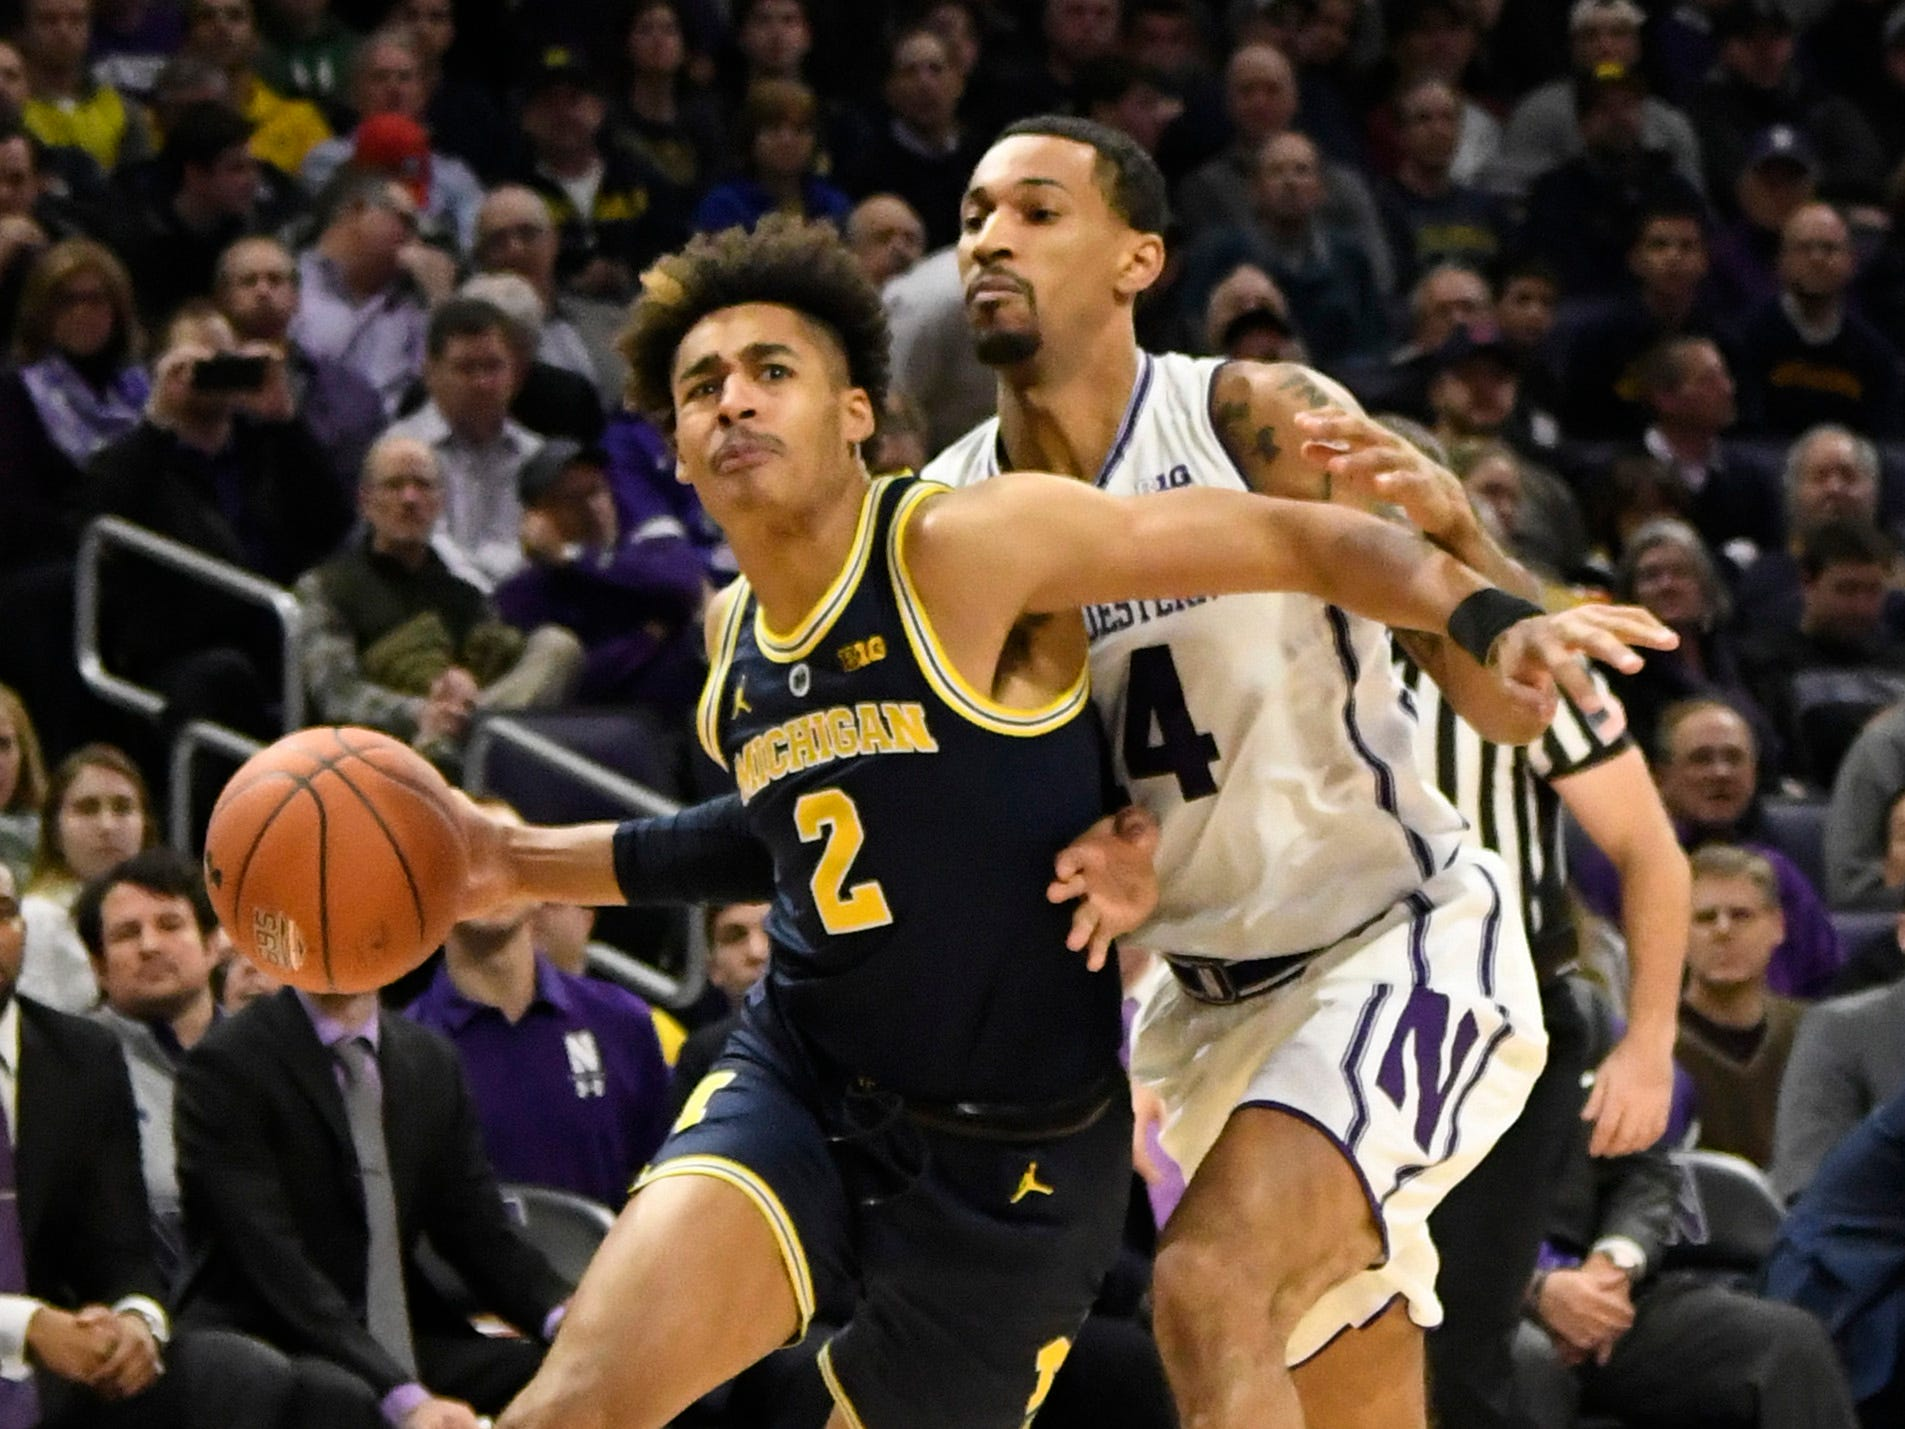 Michigan guard Jordan Poole is defended by Northwestern guard Ryan Taylor during the first half at Welsh-Ryan Arena, Dec. 4, 2018 in Evanston, Ill.